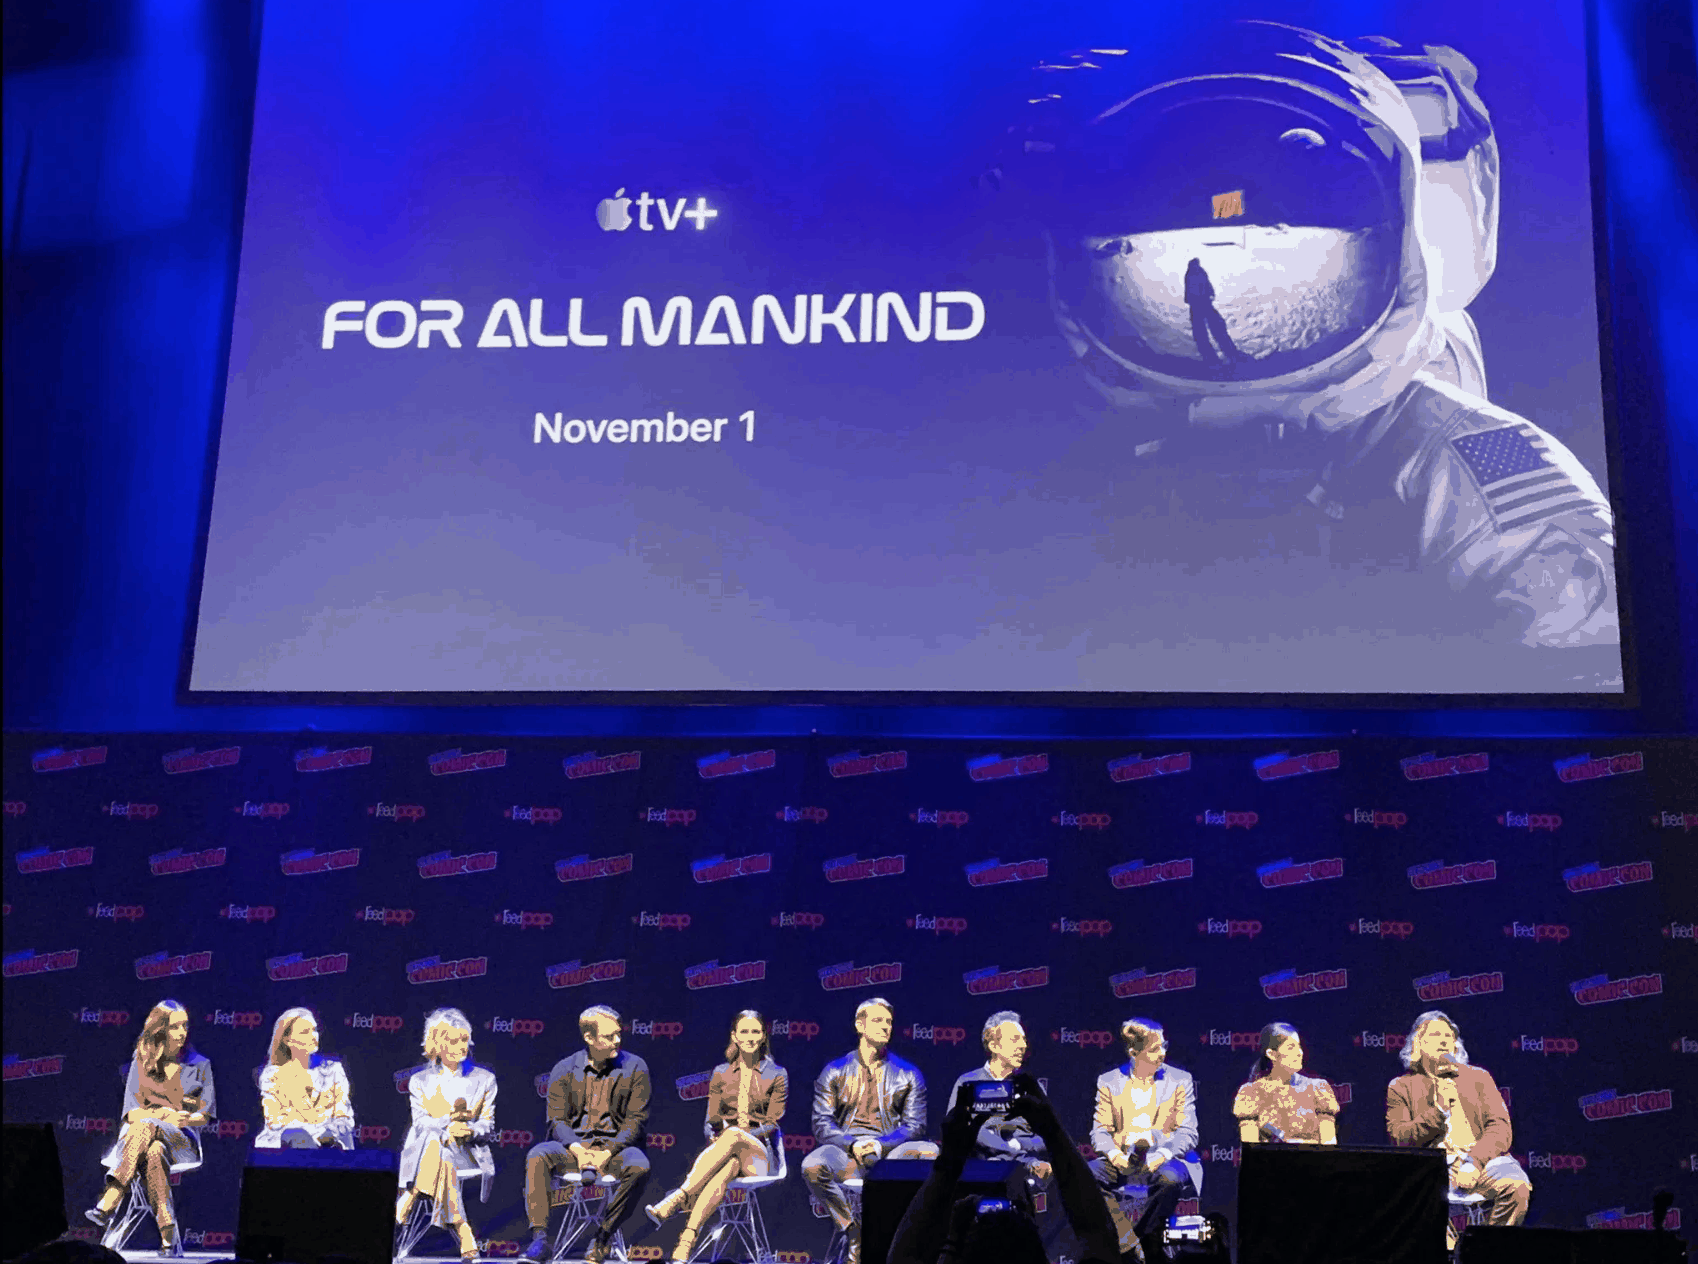 'For All Mankind' Gets a Preview at New York Comic Con